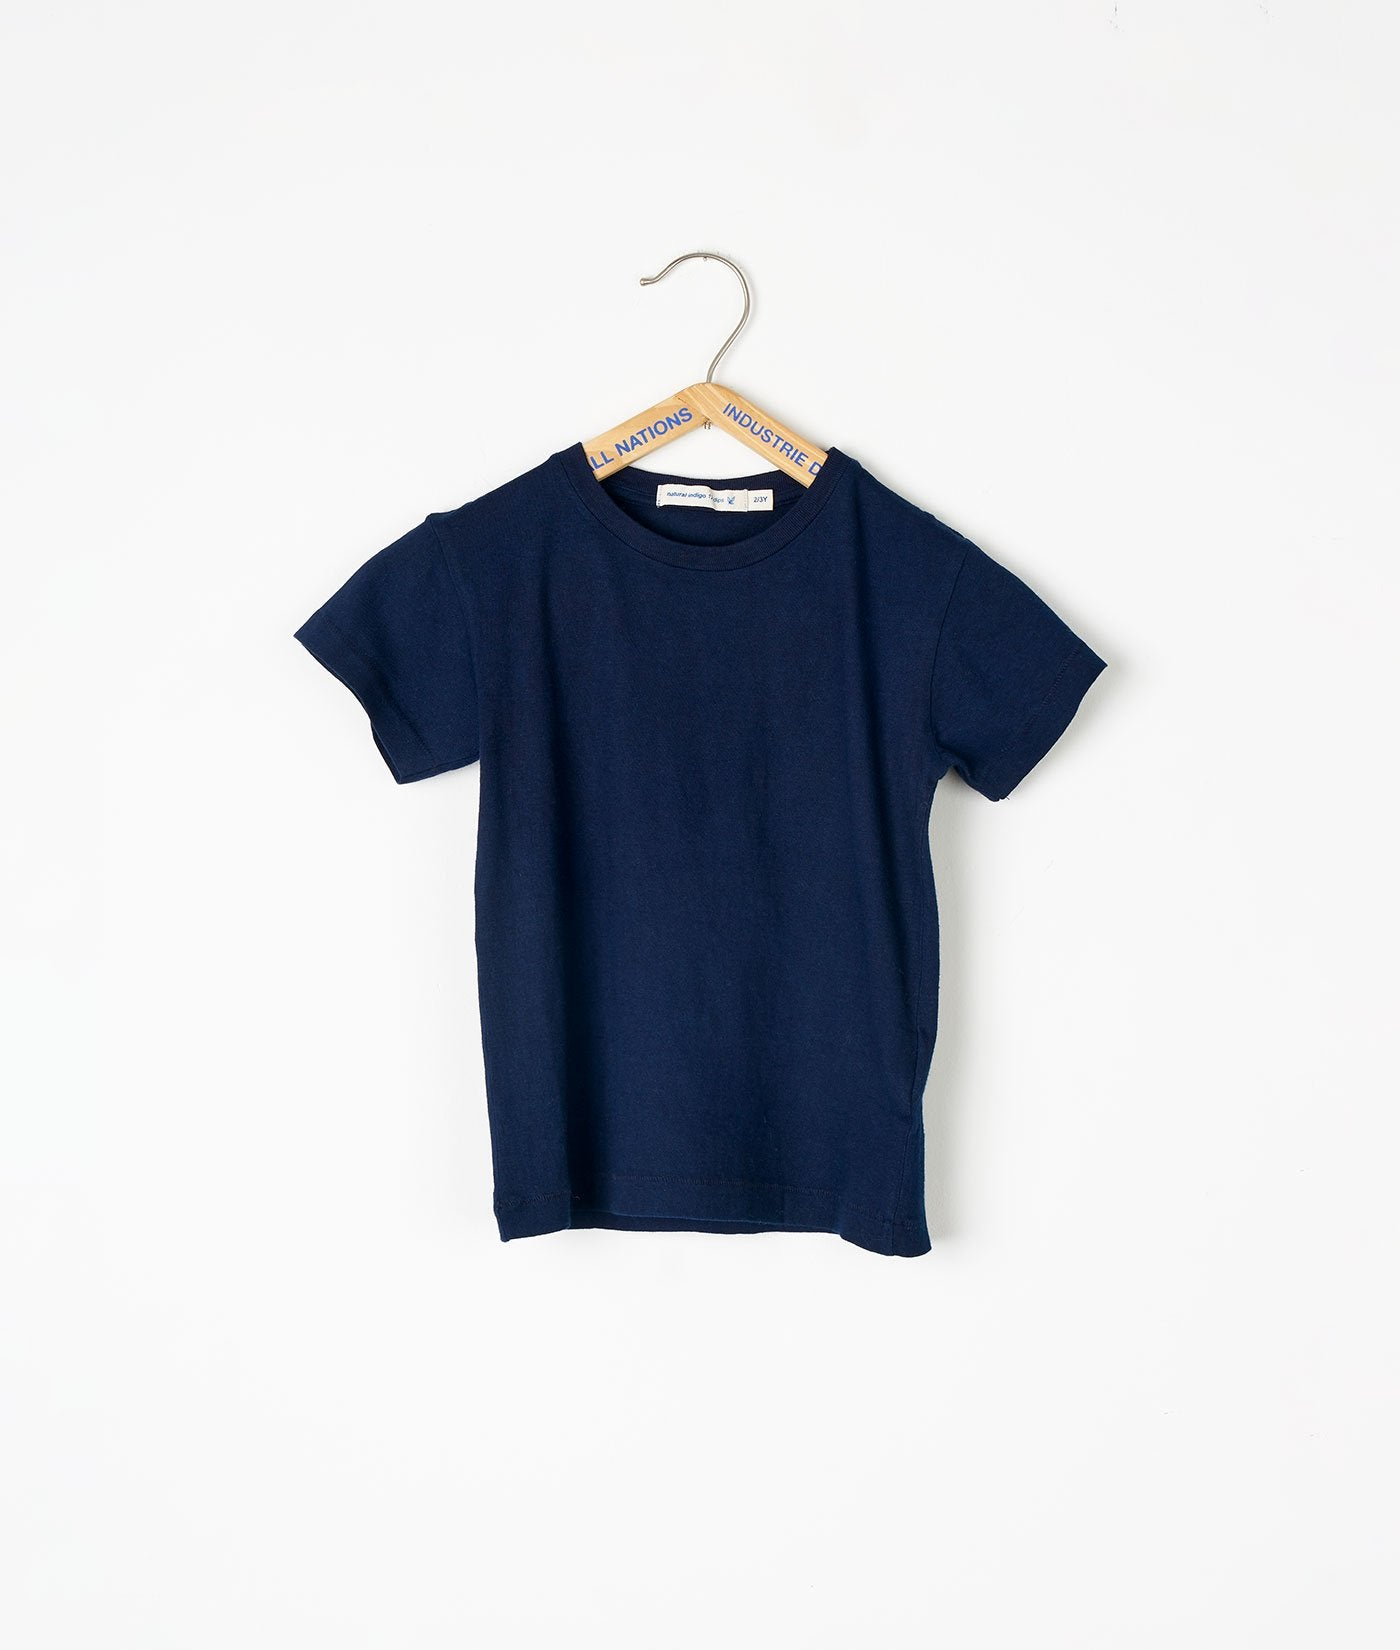 Industry of All Nations Kids Organic Cotton T-Shirt Indigo 12